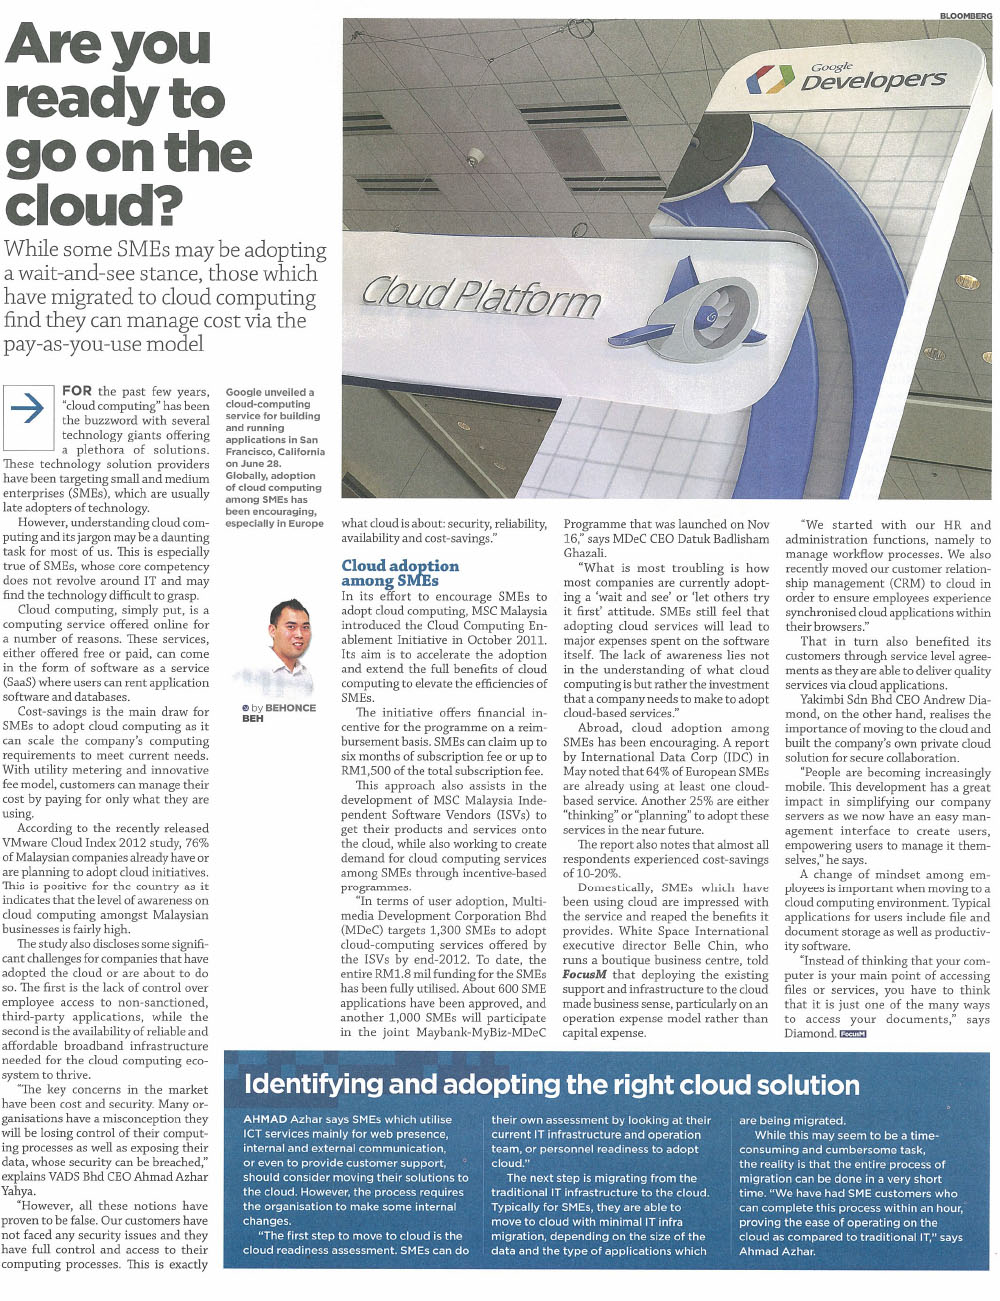 Are you ready to go on the Cloud?